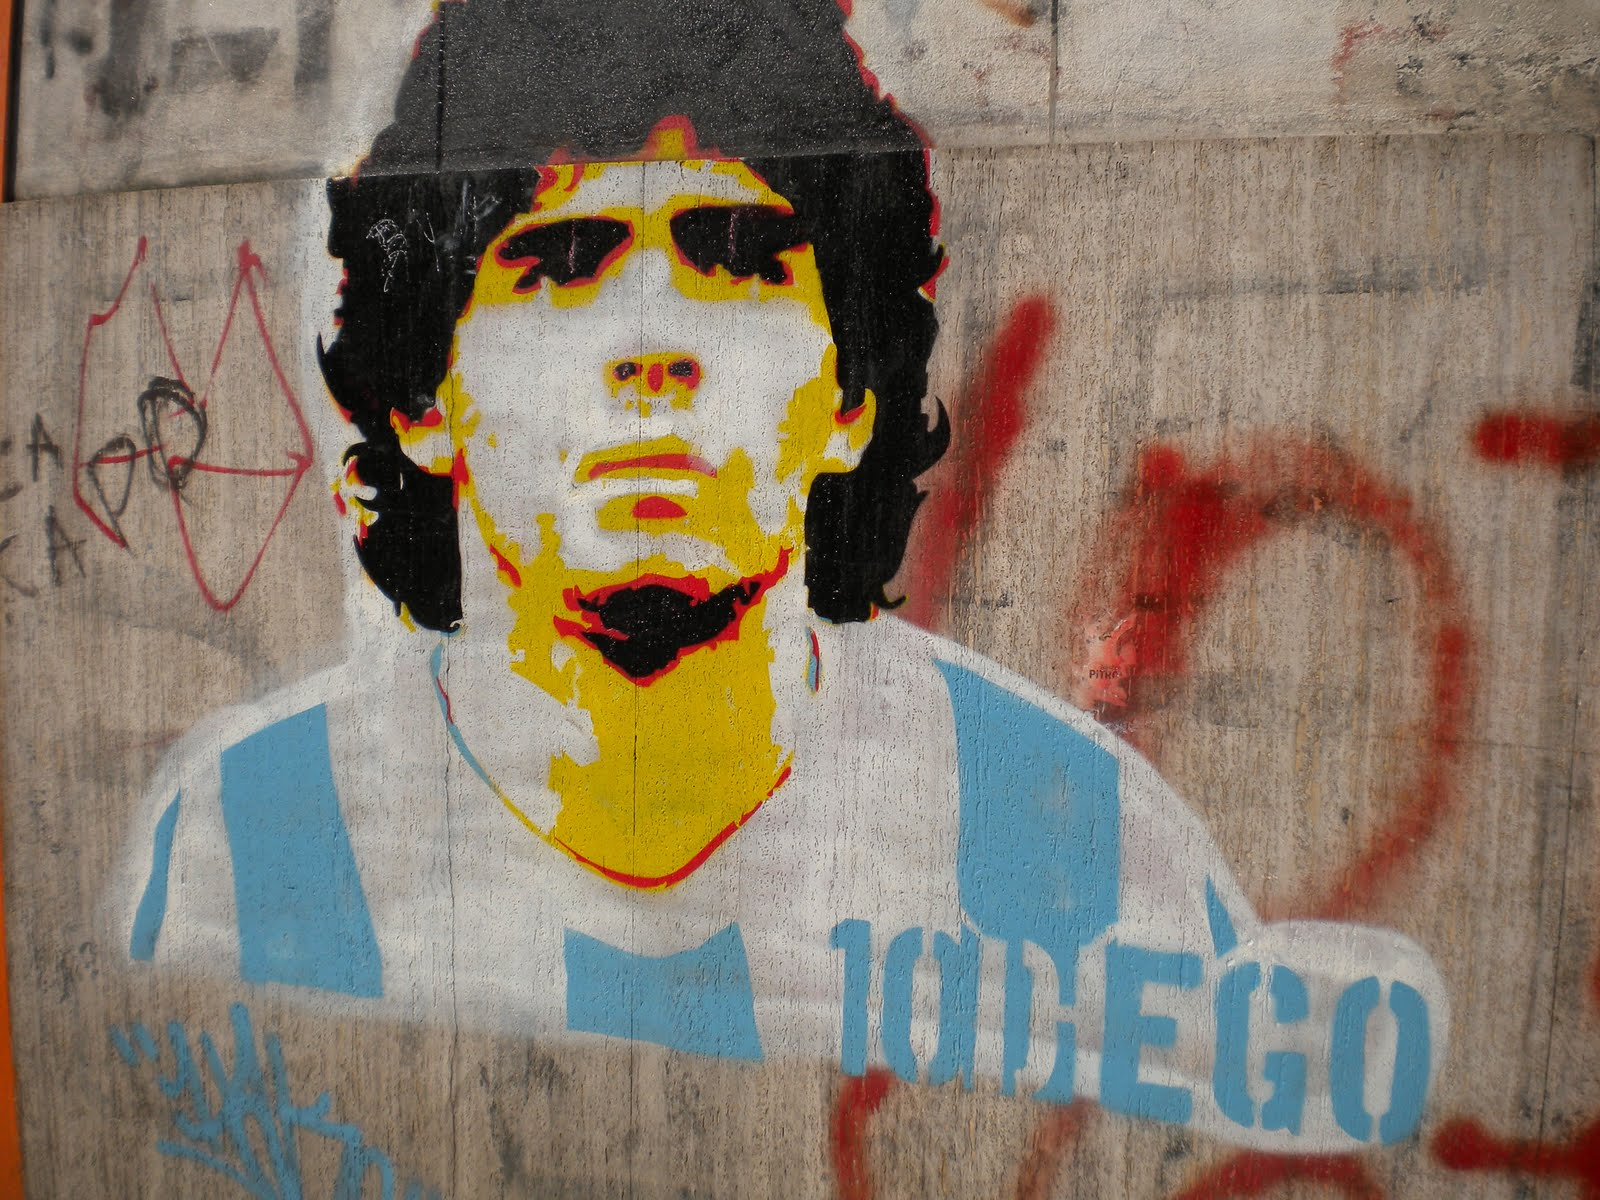 Maradona Boca Juniors Wallpaper